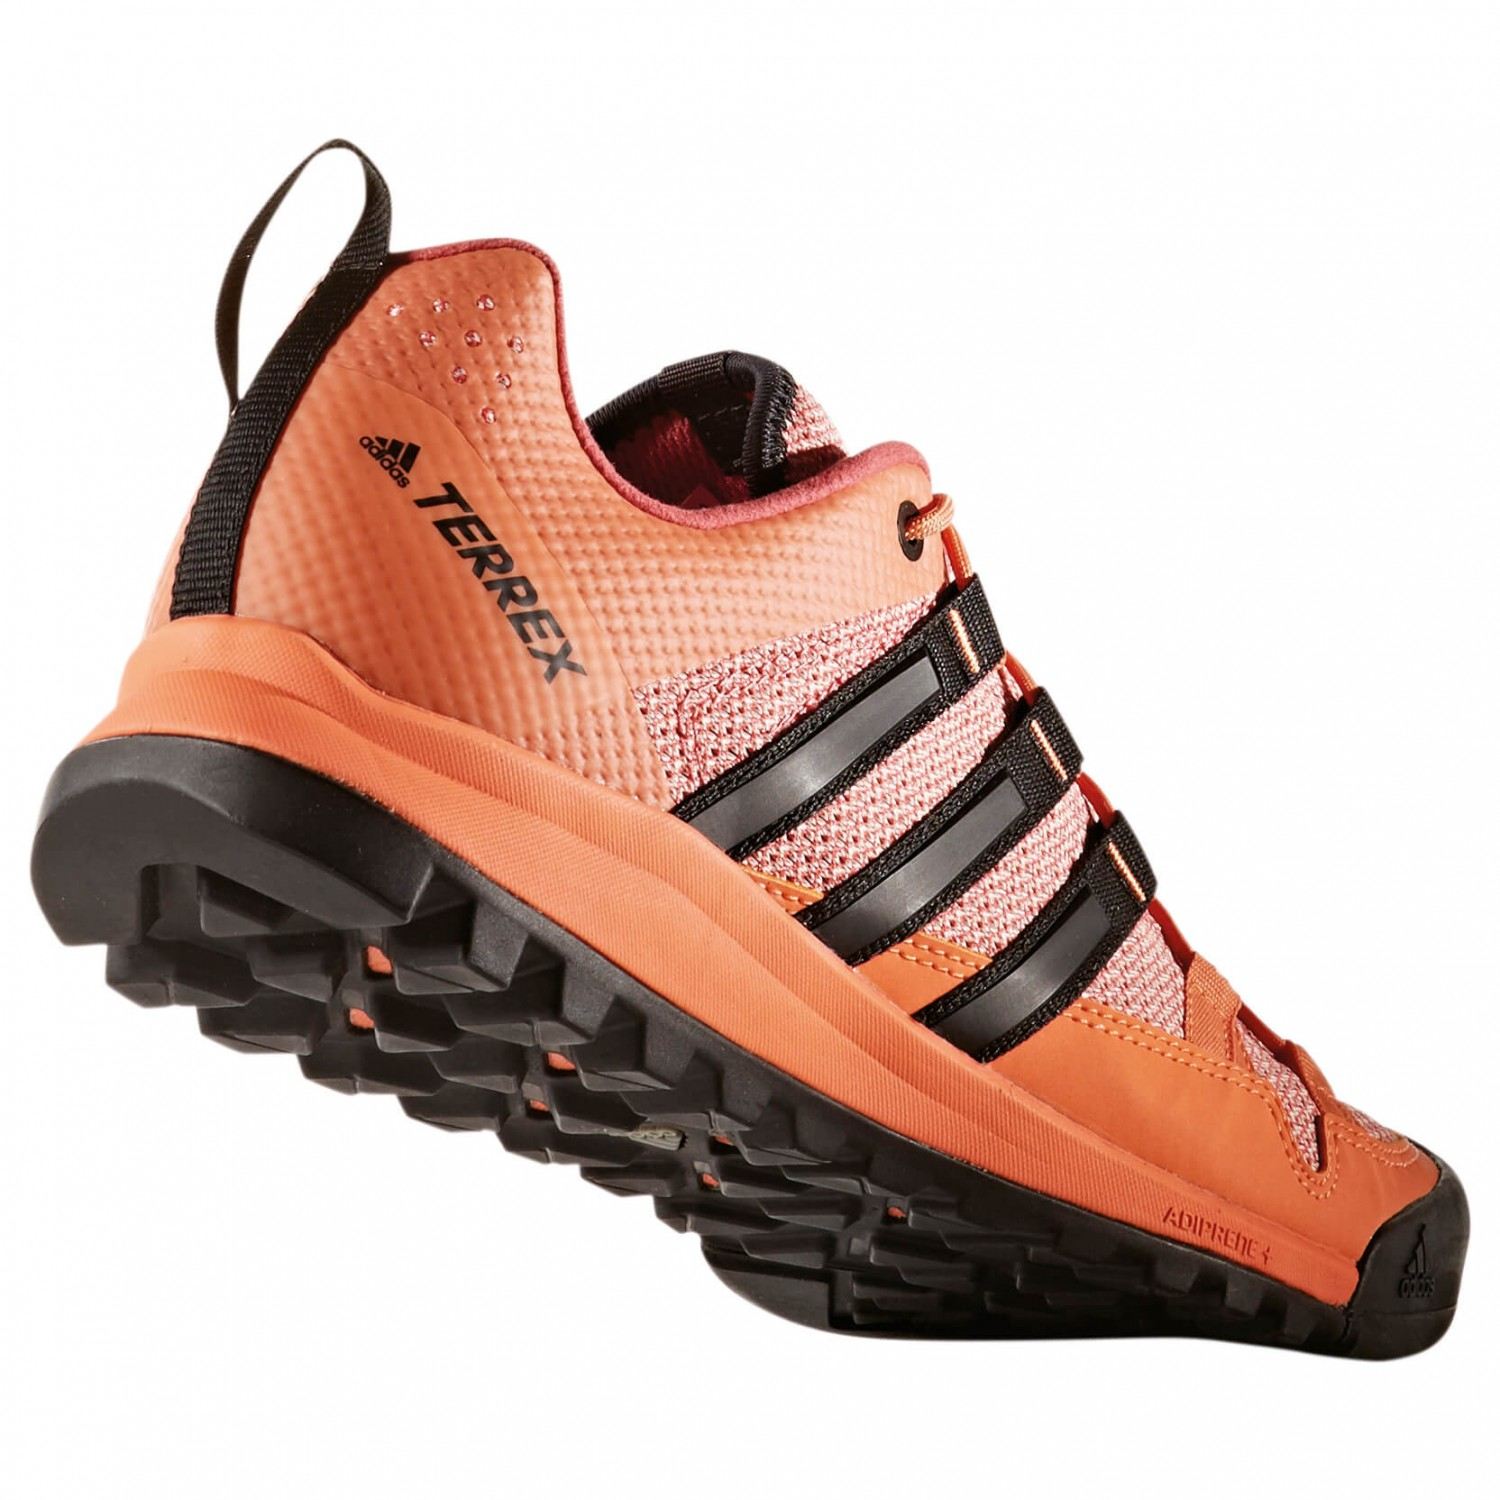 Women's Chaussures Solo Adidas D'approche Terrex xrdCBeo